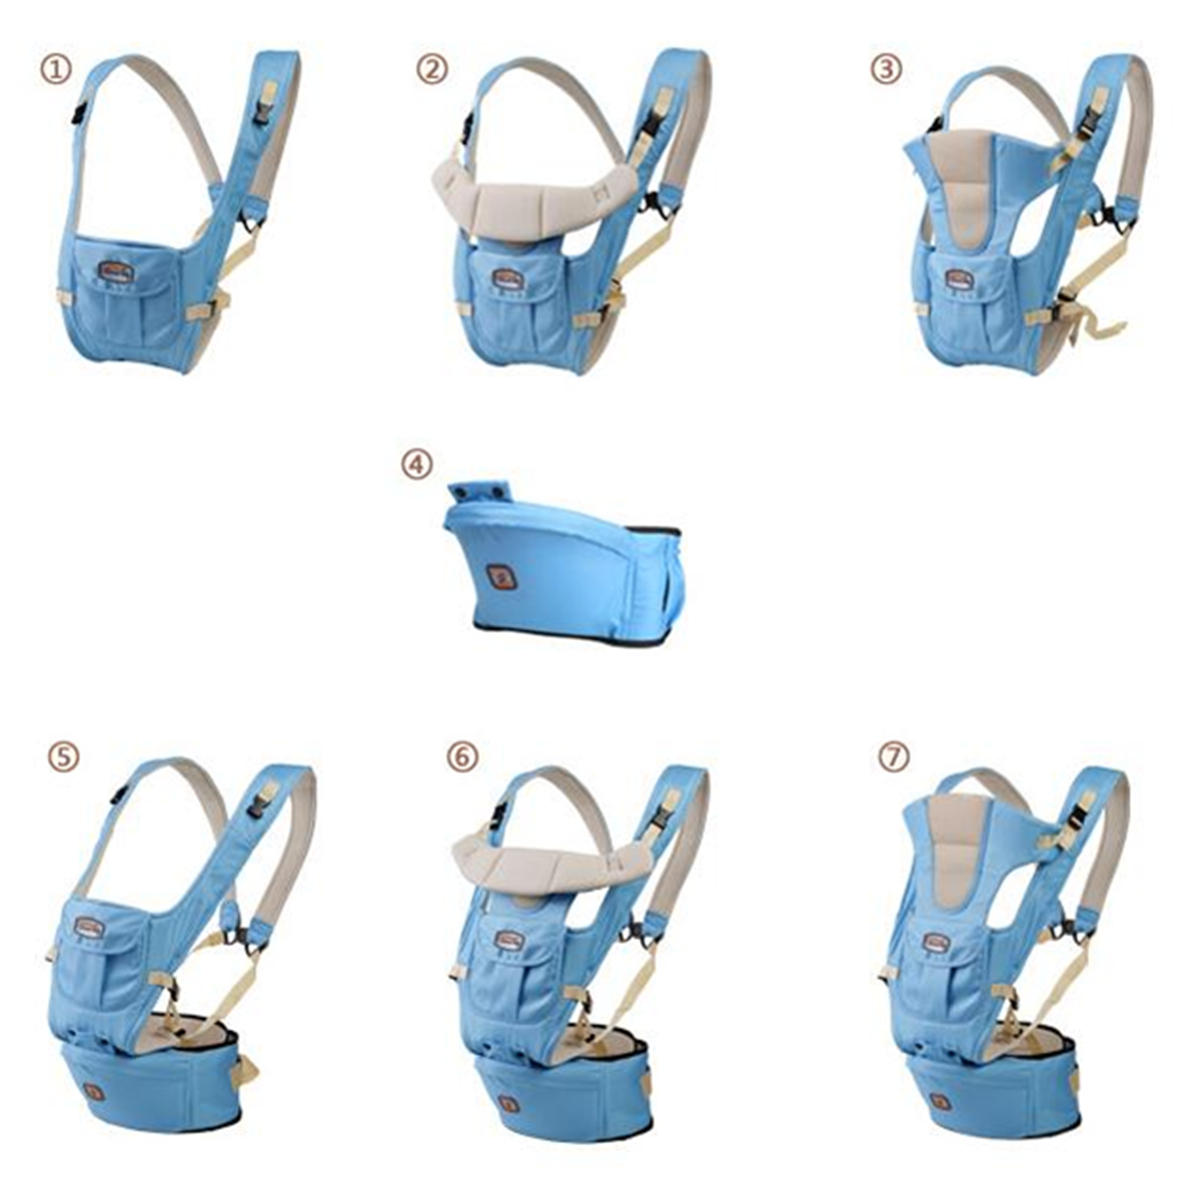 7 in 1 Adjustable Baby Infant Sling Carrier Breathable Ergonomic Wrap Backpack Baby Carriers - 5